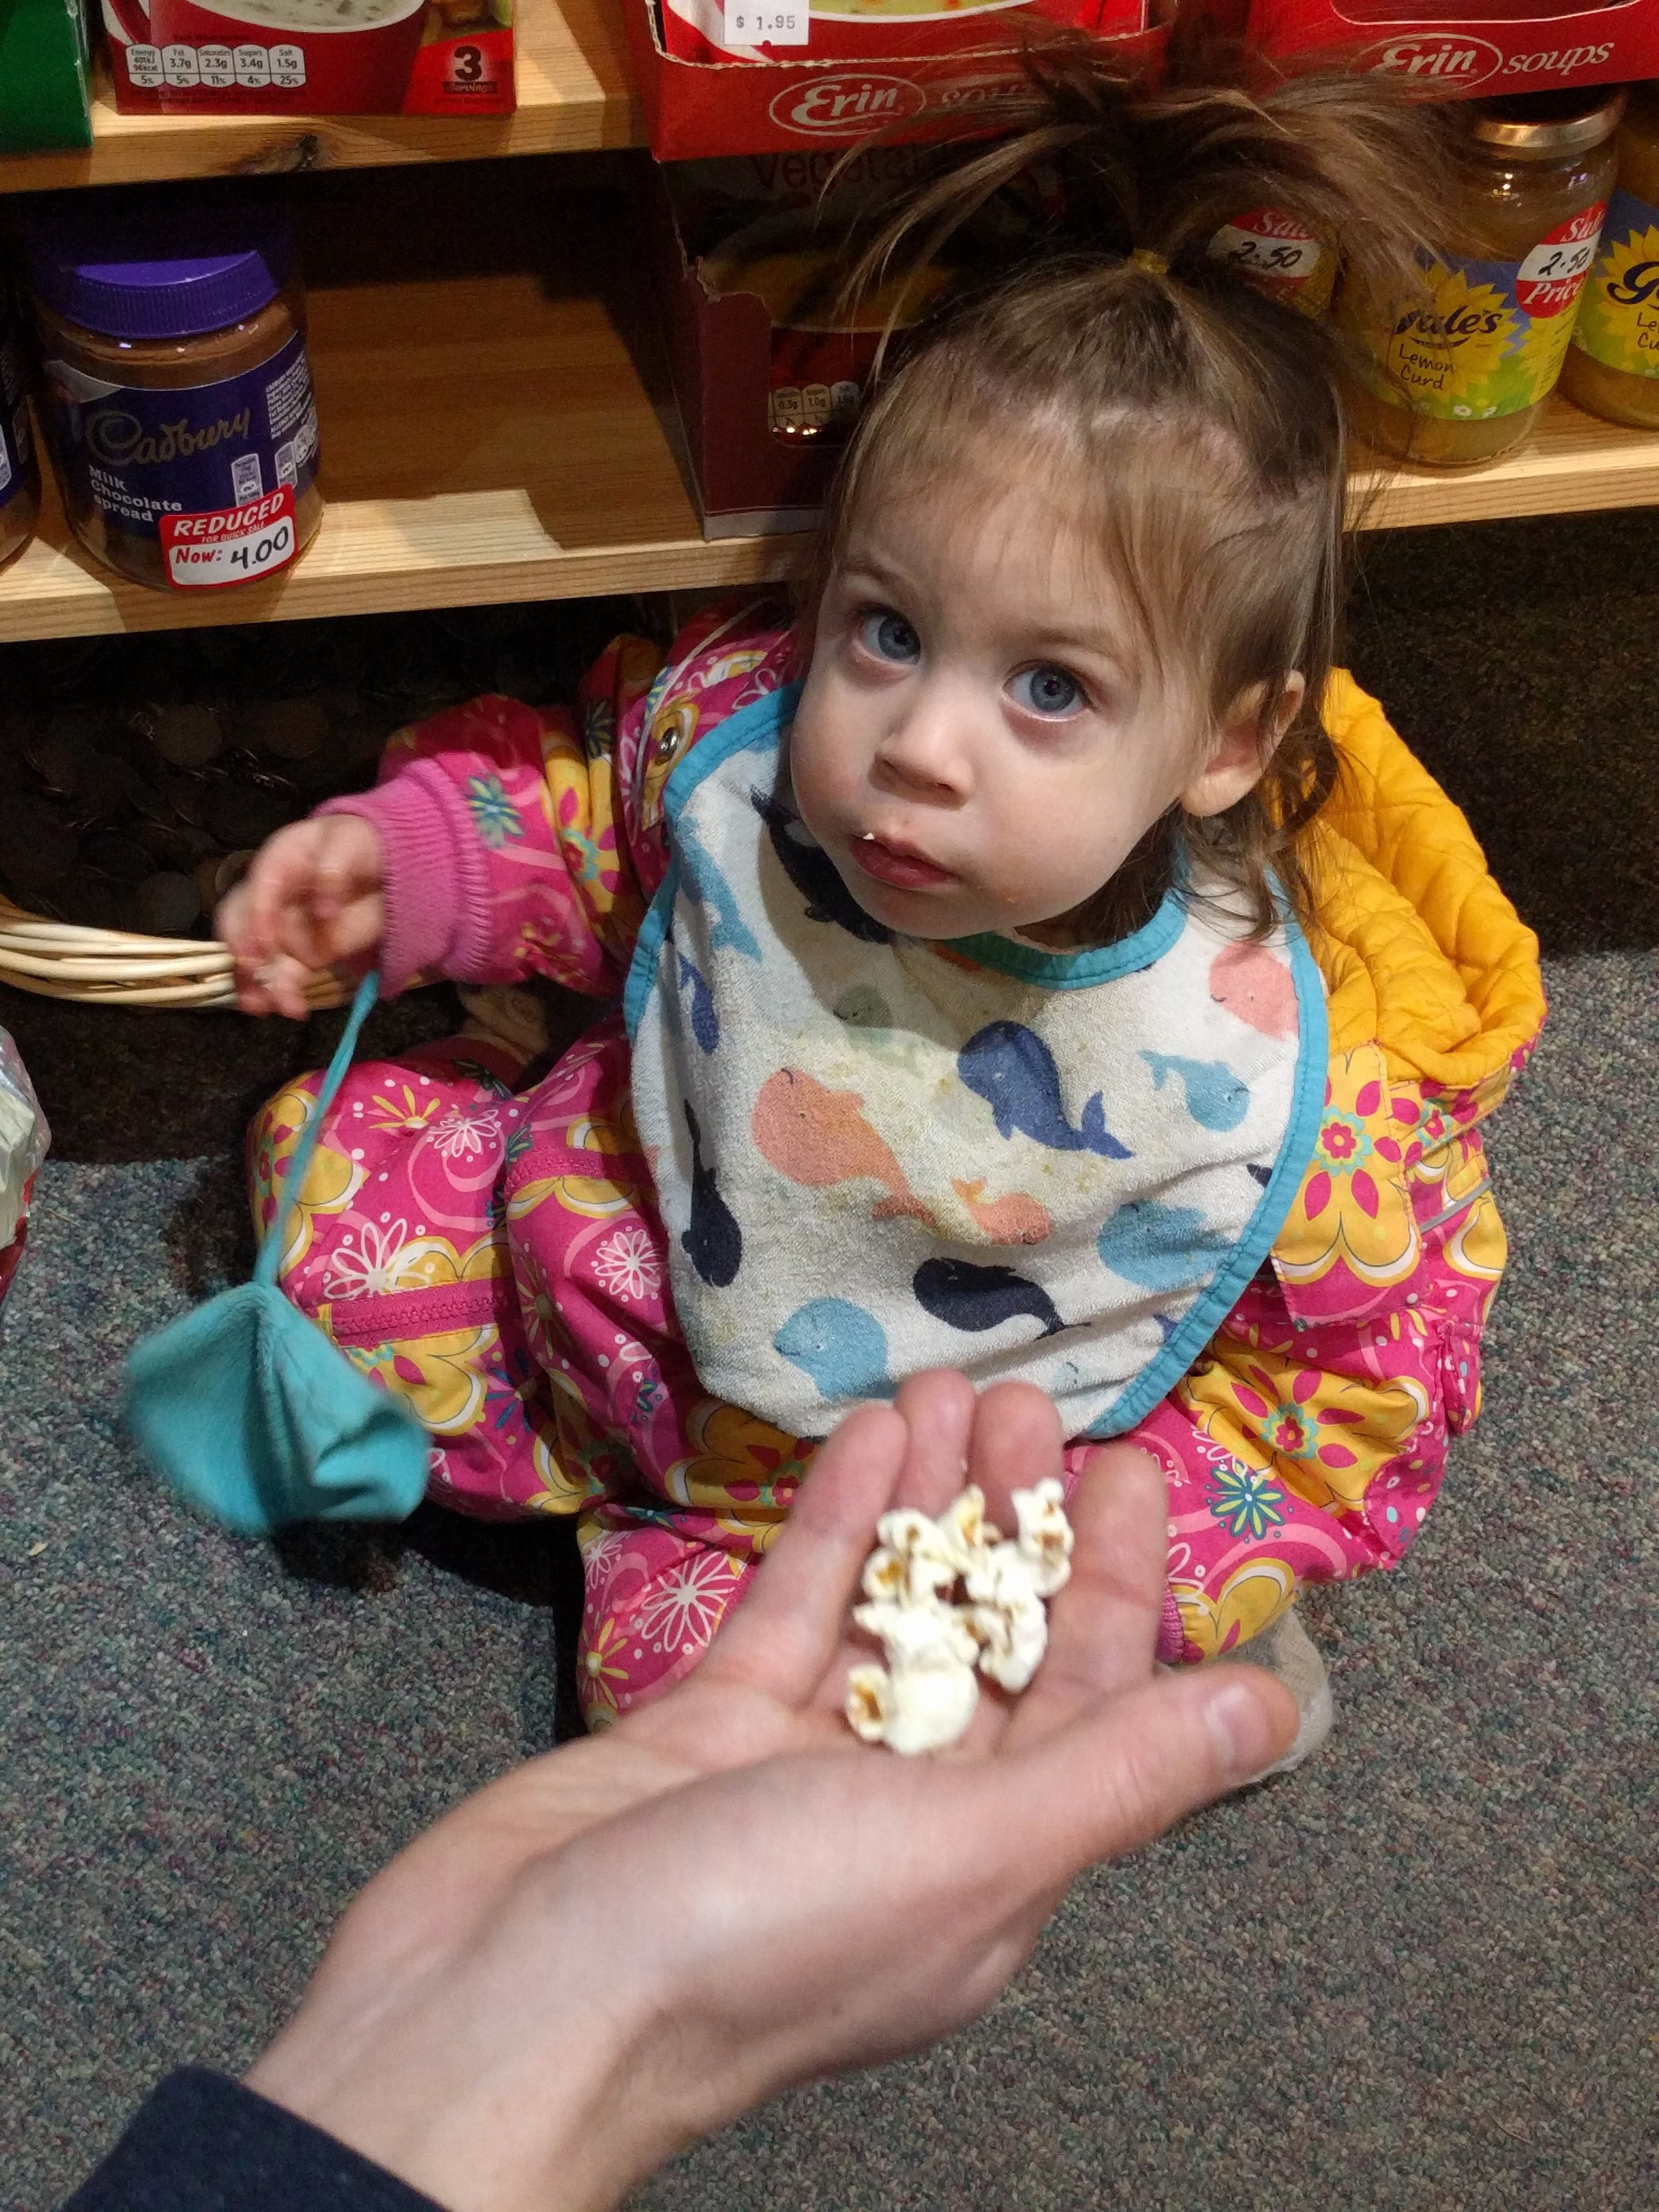 Sampling all of the snacks. Hot and spicy Monster Munch was her favorite.